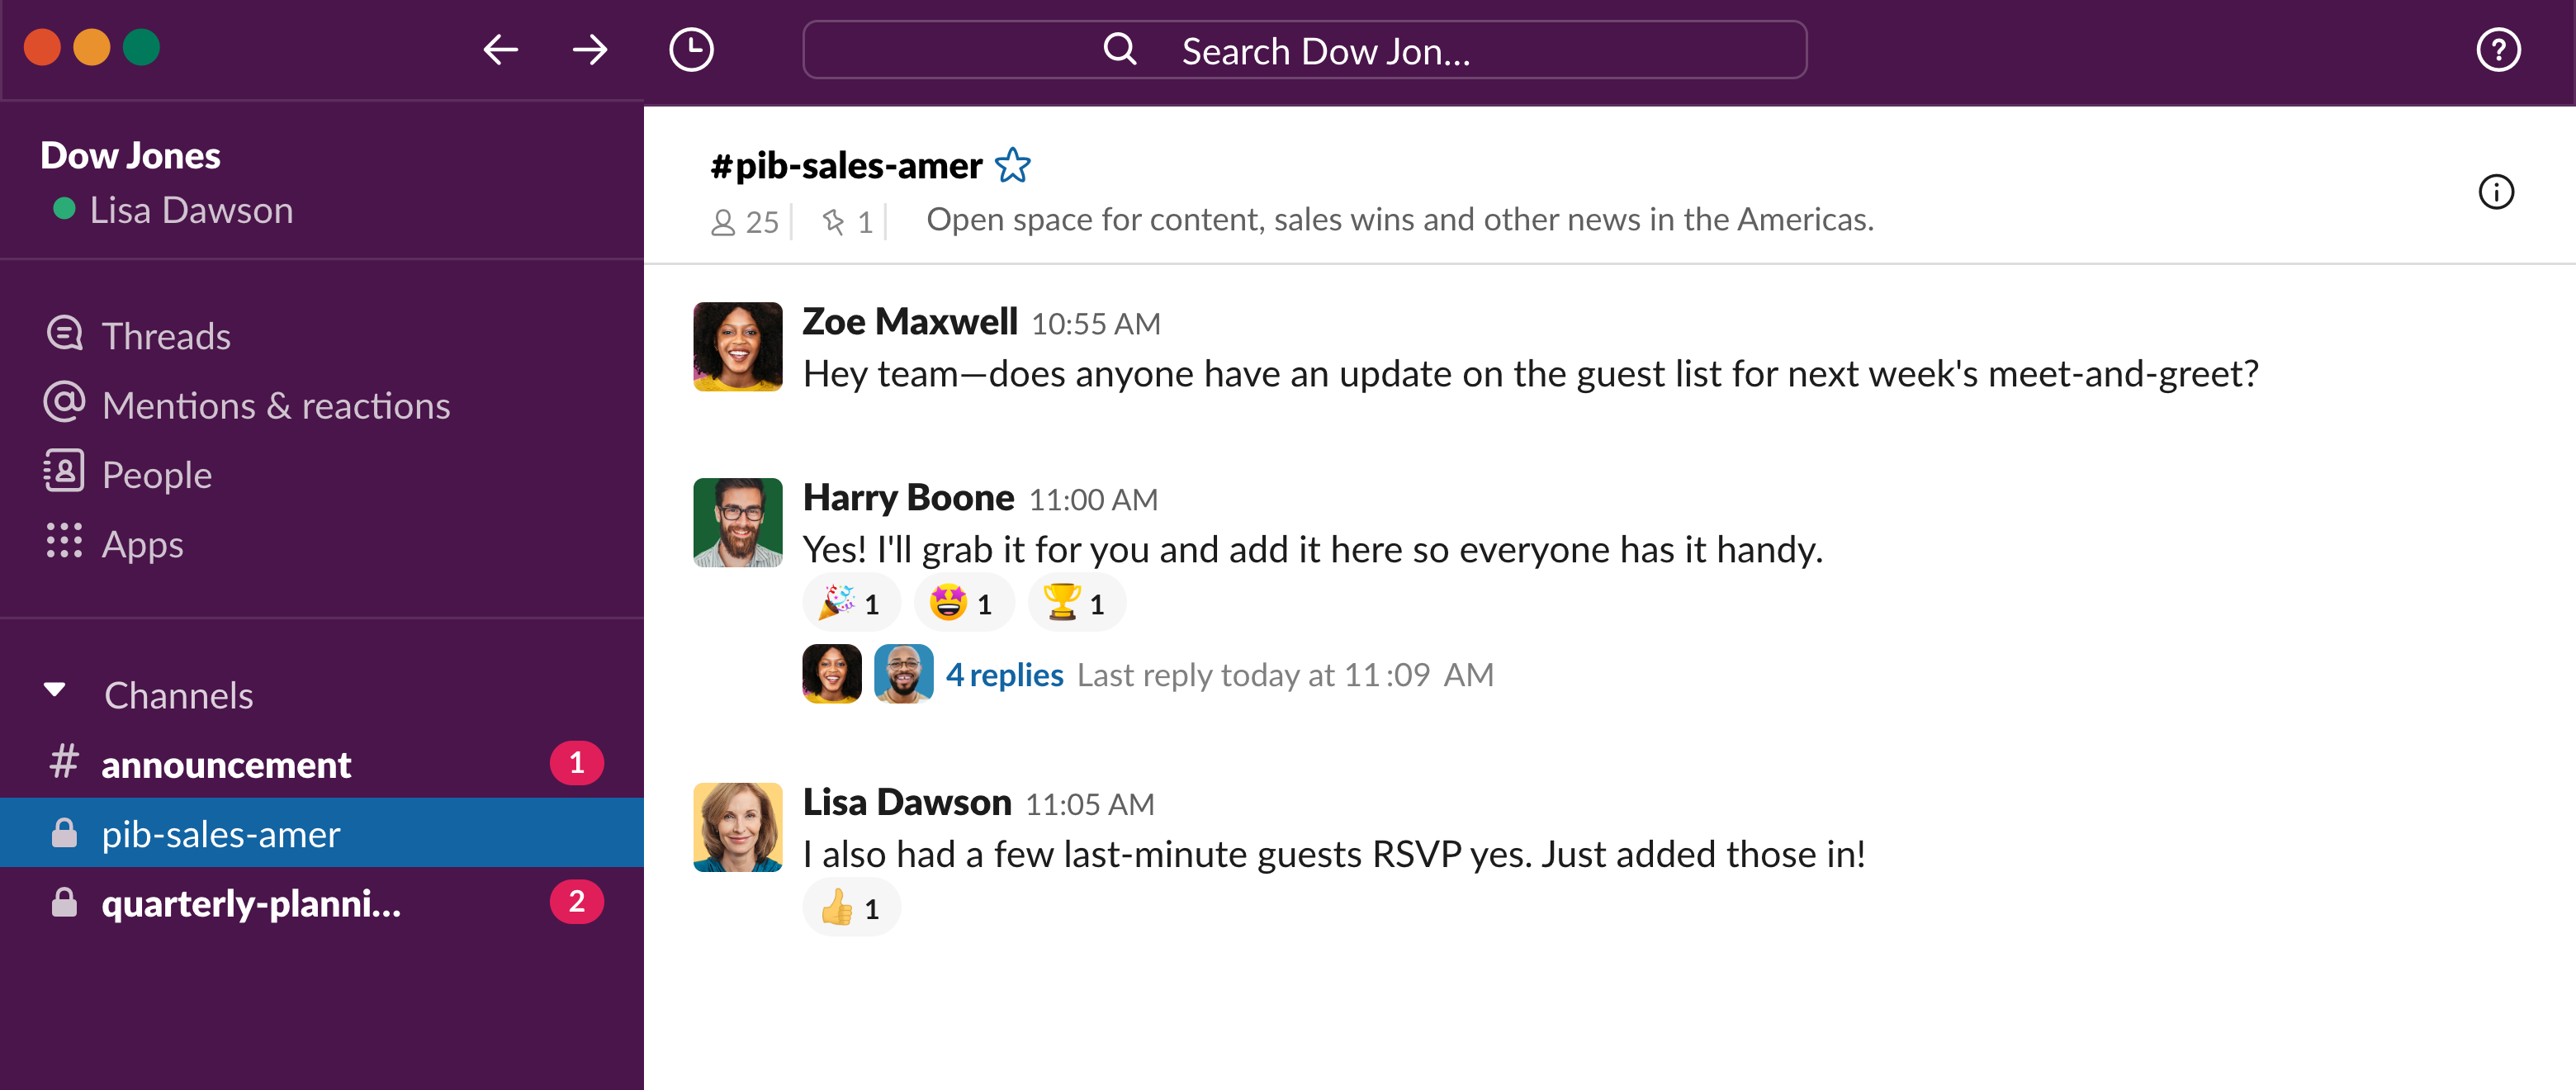 Dow Jones's internal comms strategy in Slack channels